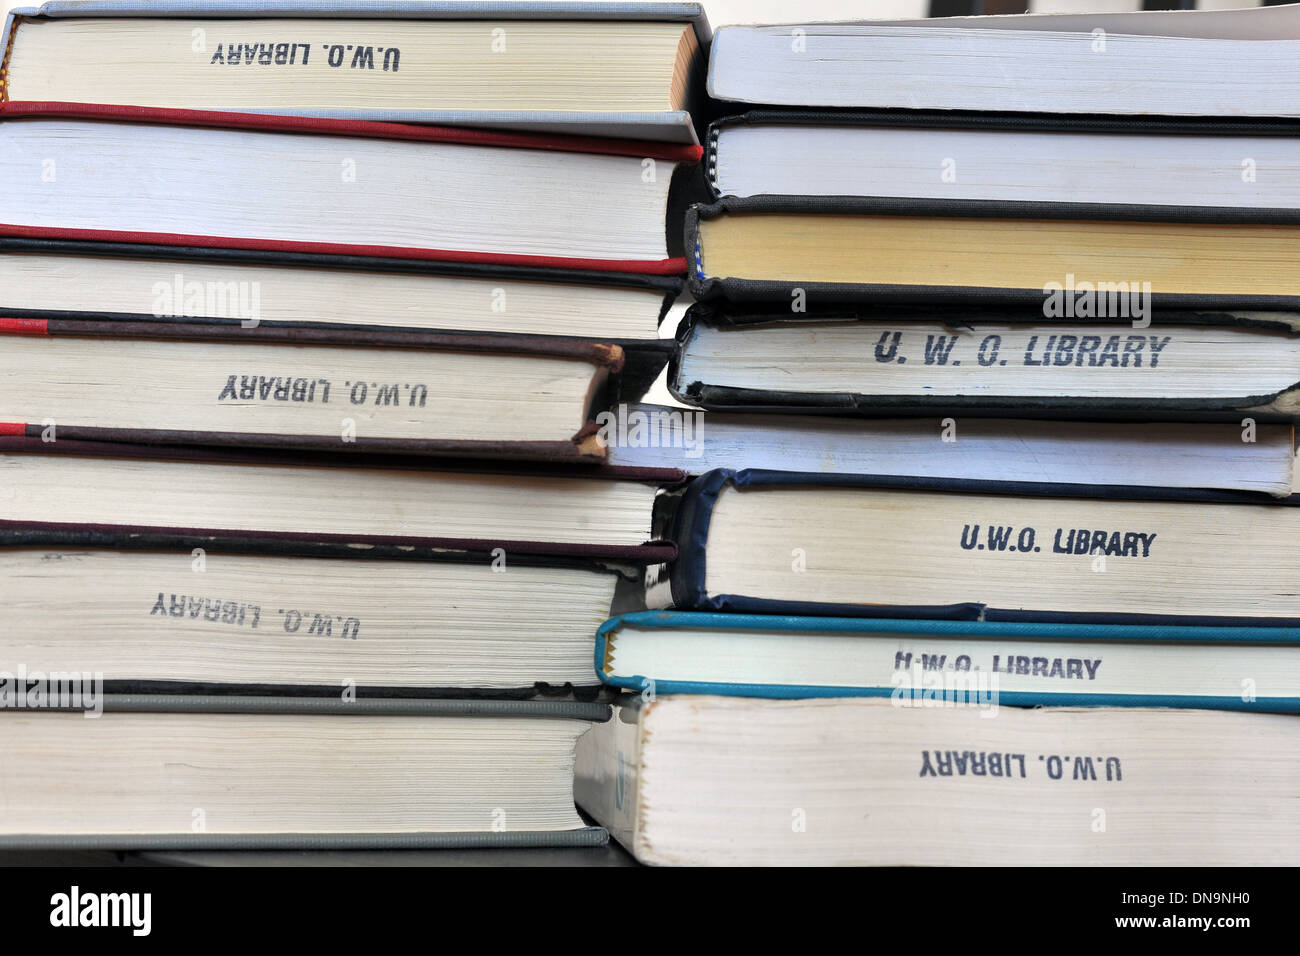 A stack of academic books on mothering and race. - Stock Image